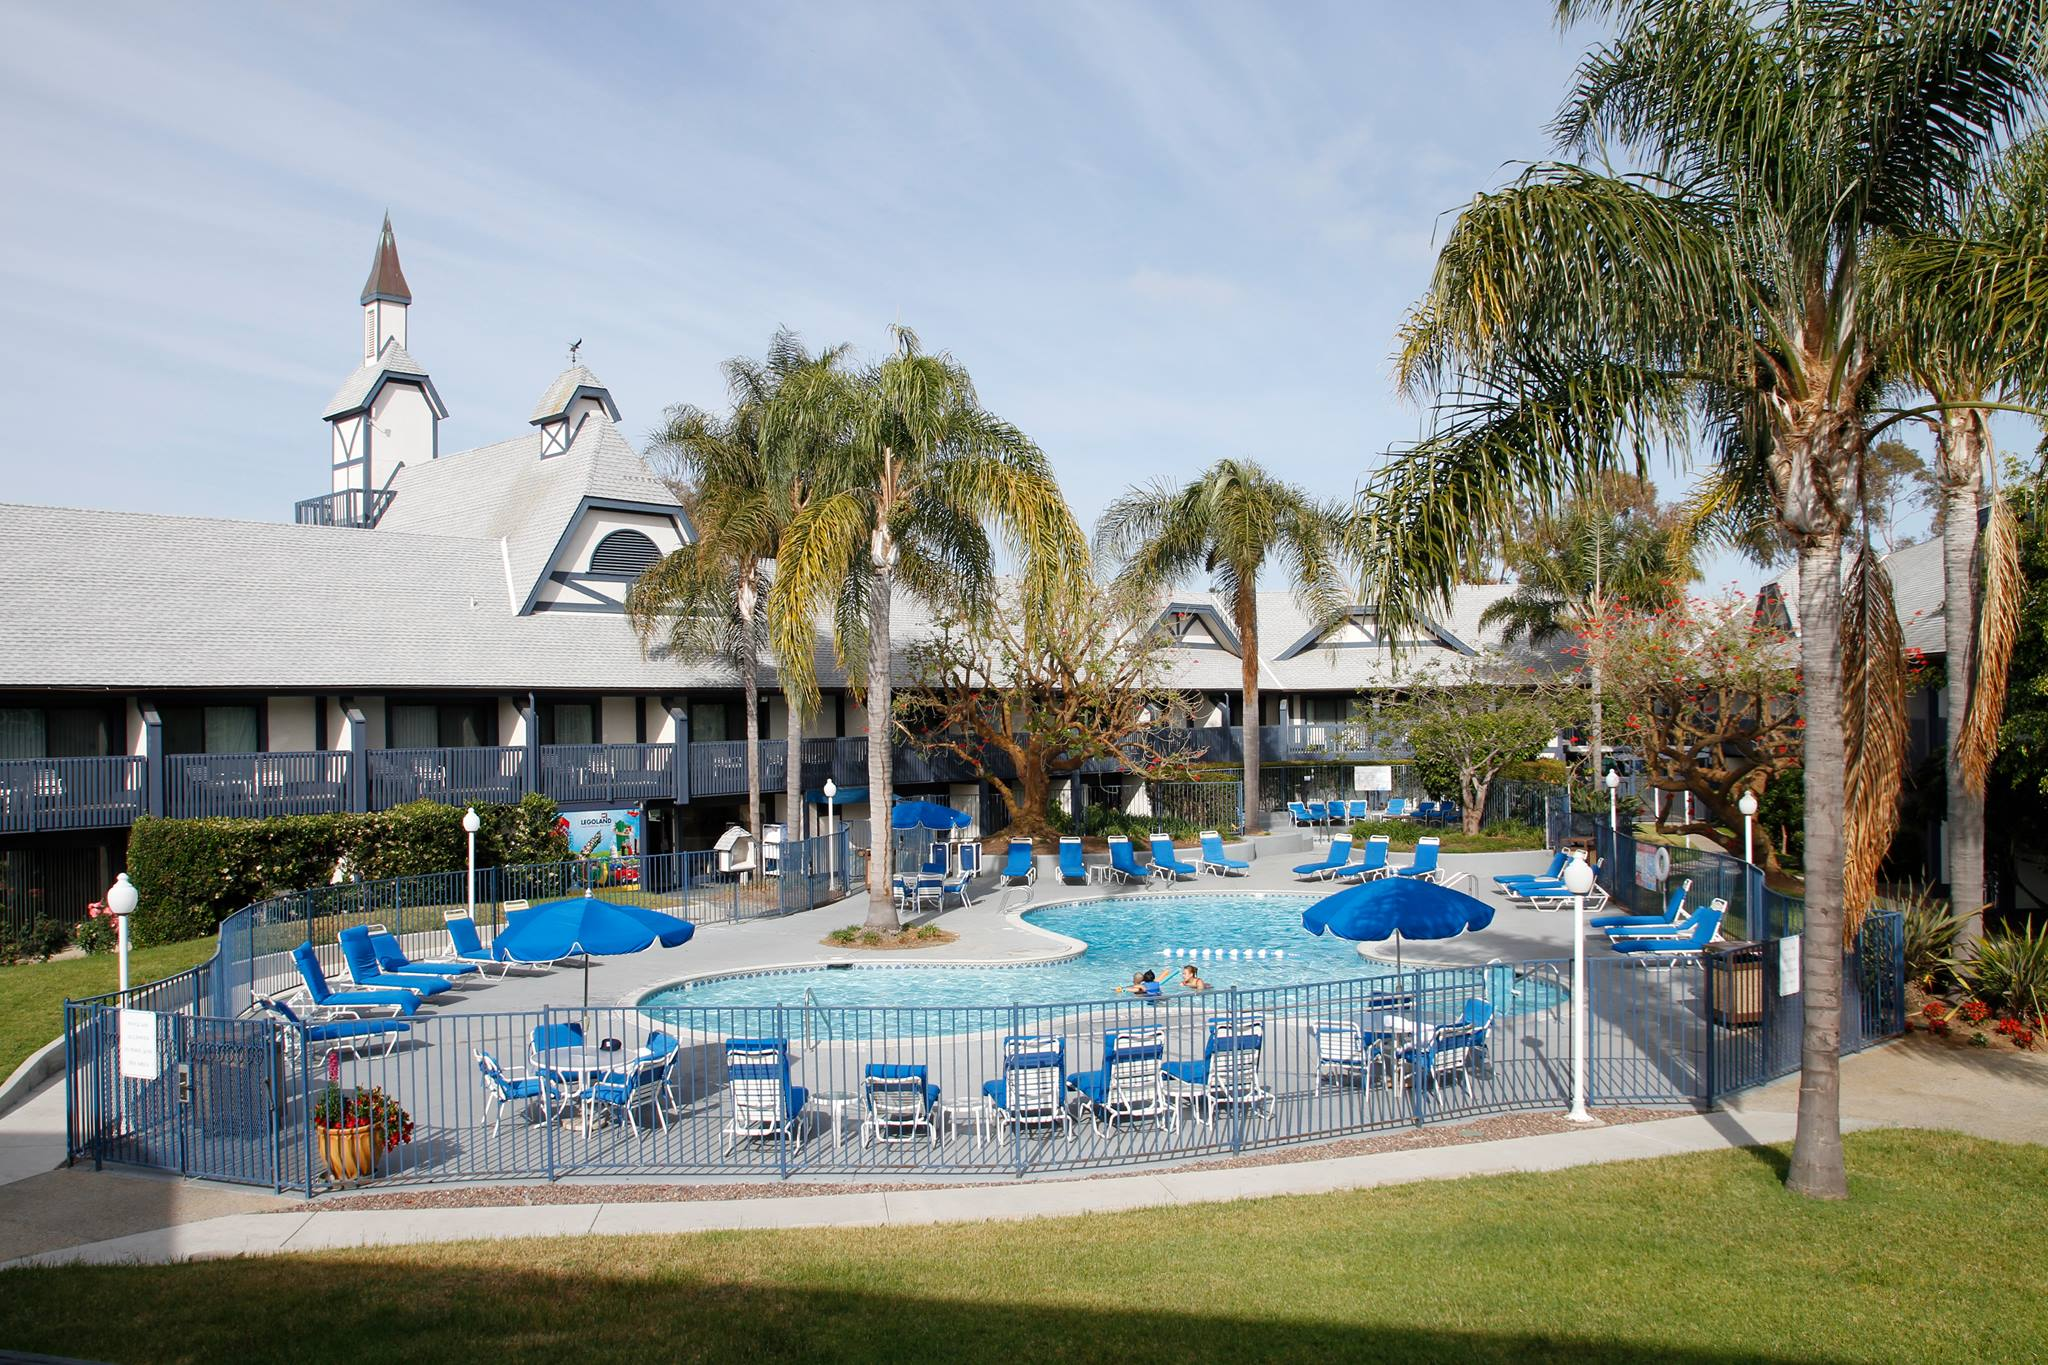 The Carlsbad by the Sea Resort in Carlsbad, California, owned by RAR Hospitality, is a former Holiday Inn.